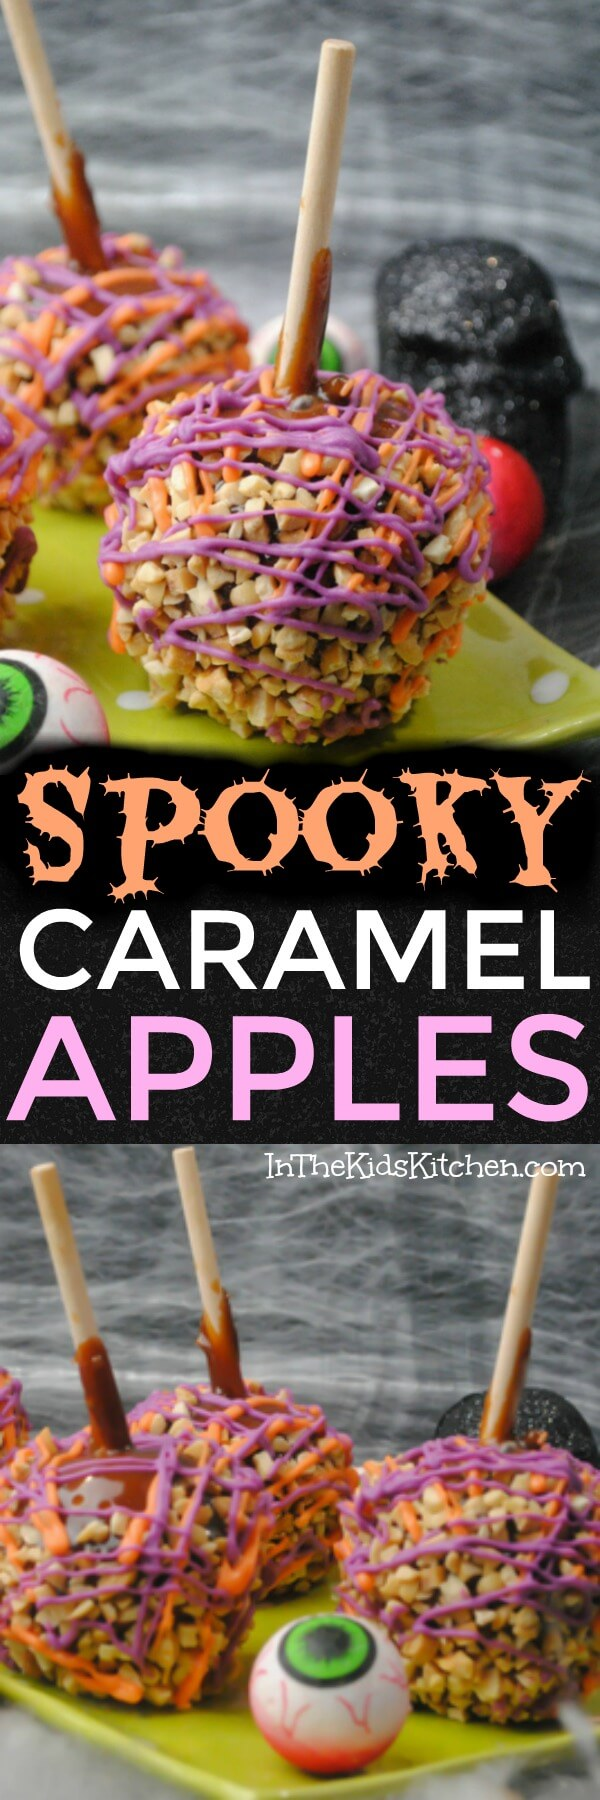 A spooky twist on a classic treat— both kids and grown-ups will love these crazy colorfulHalloween Caramel Apples!